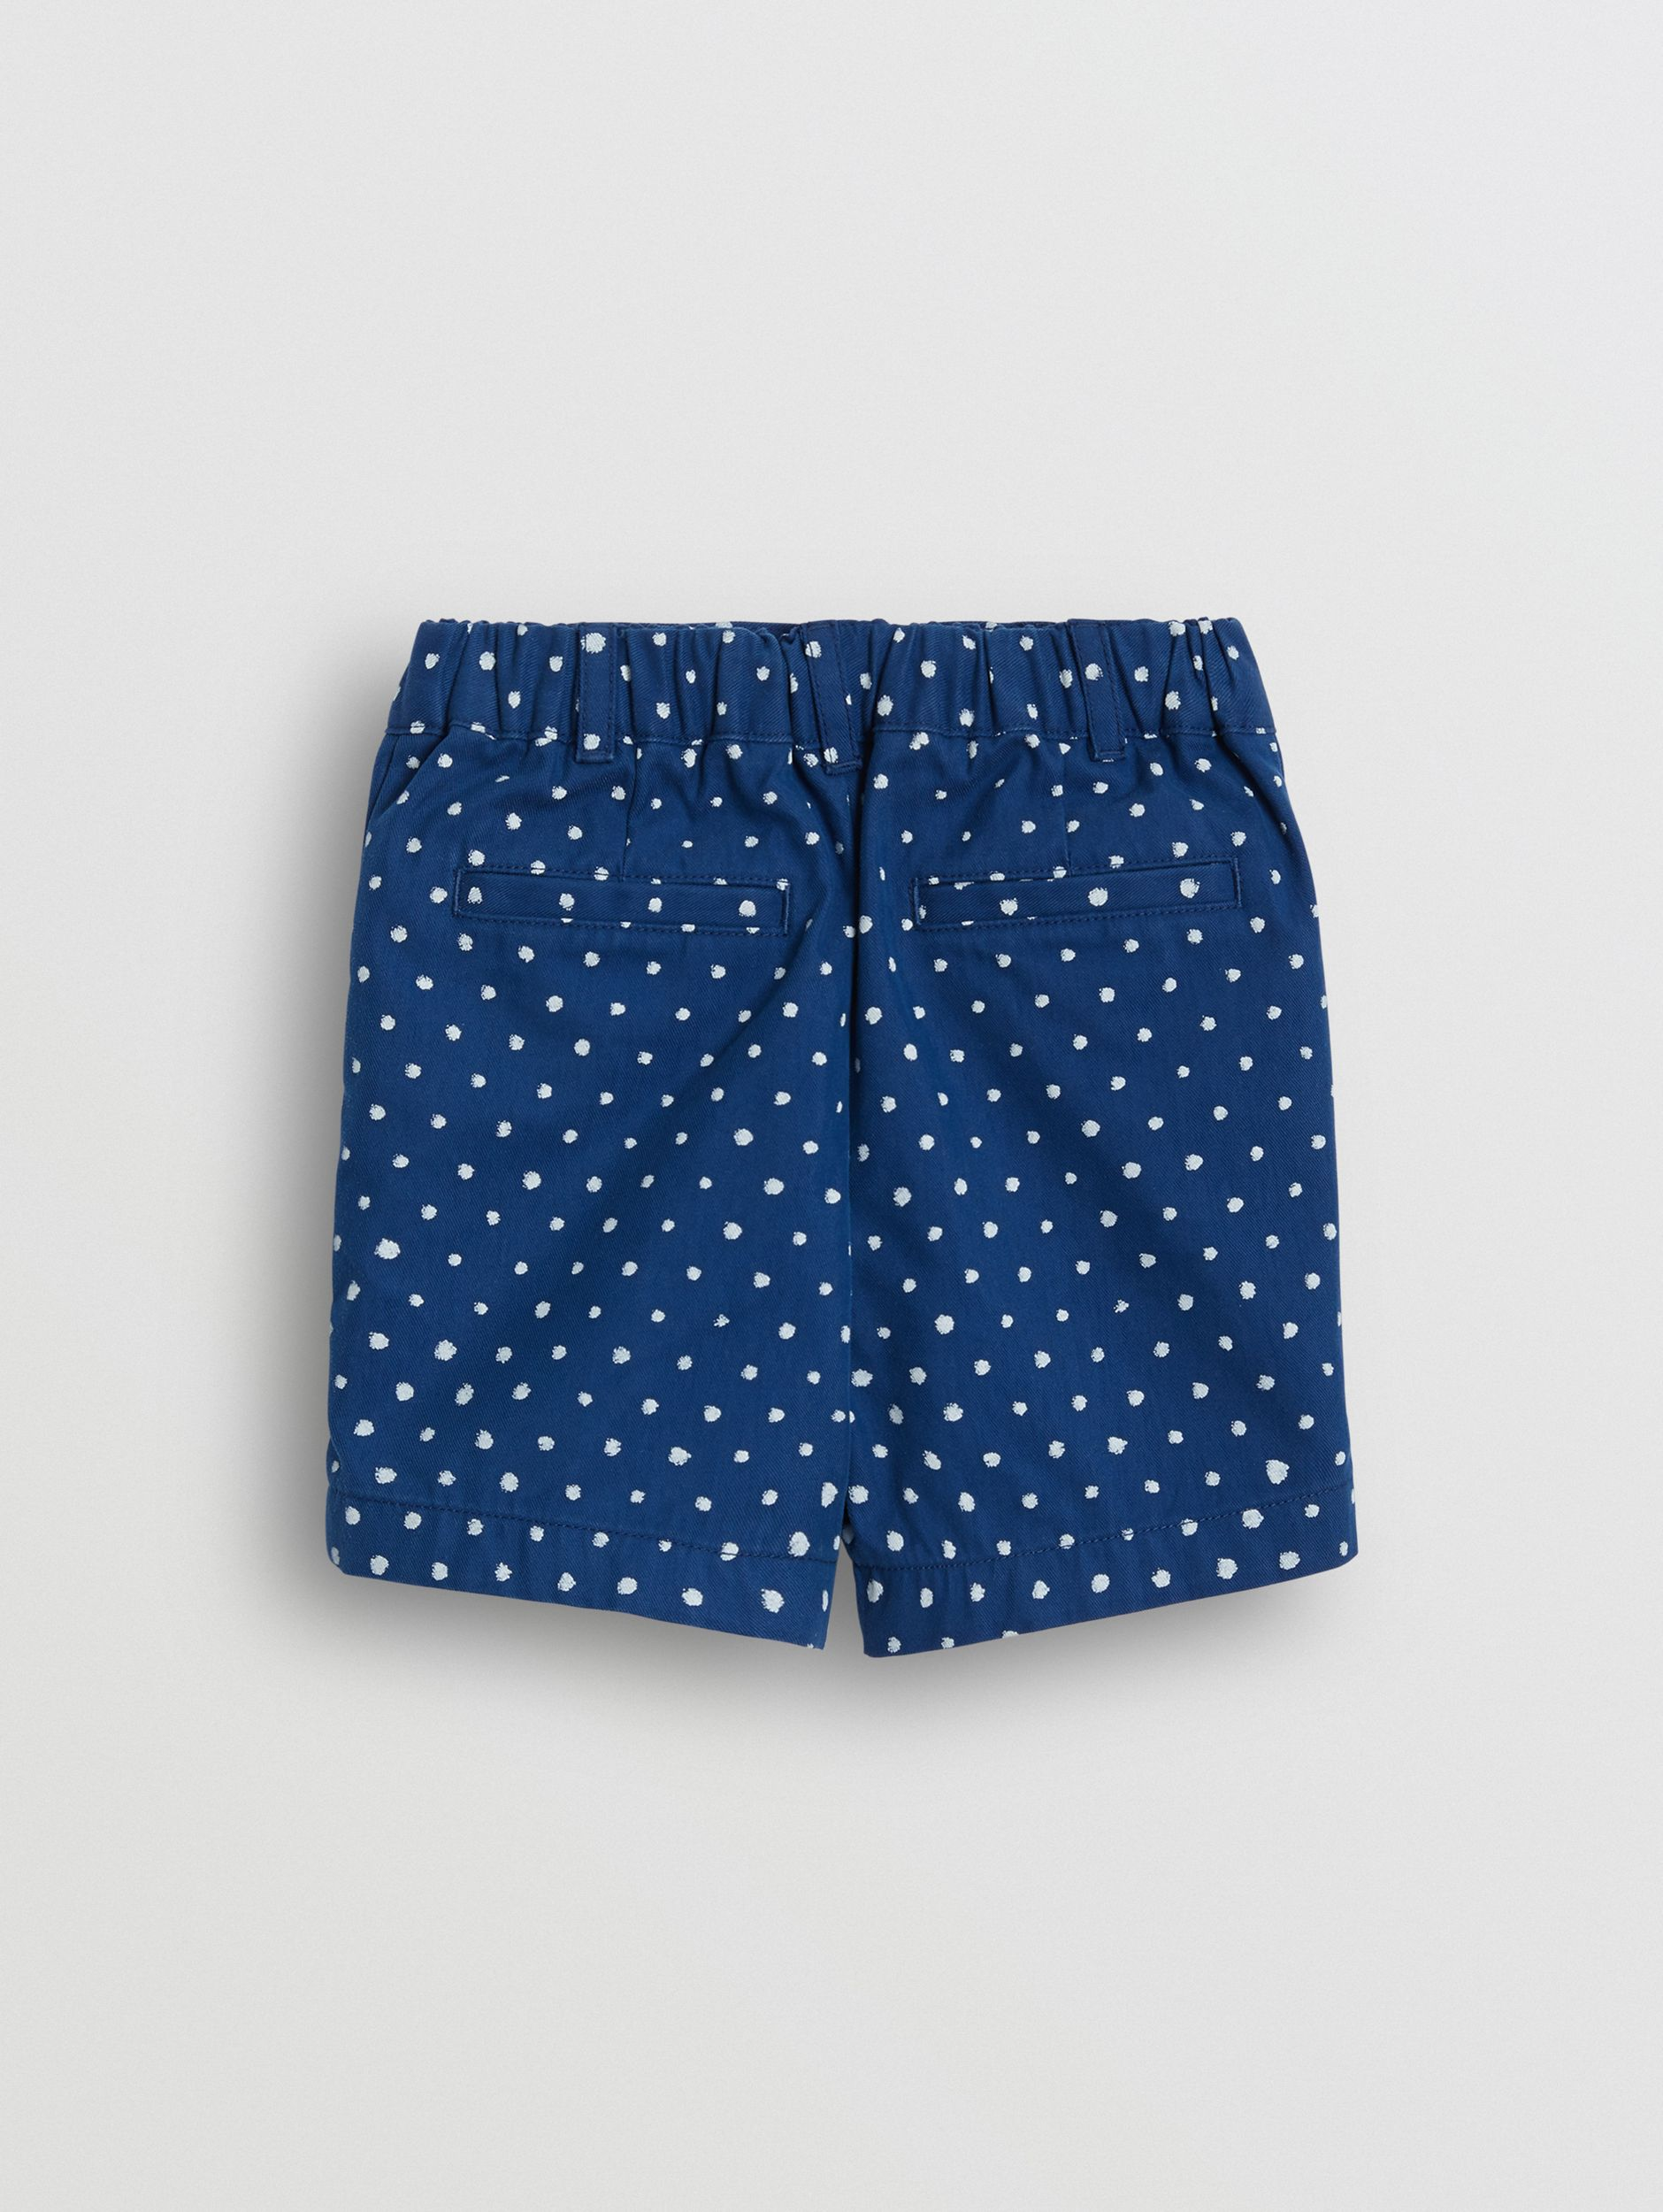 Spot Print Cotton Blend Shorts in Bright Navy - Children | Burberry - 4